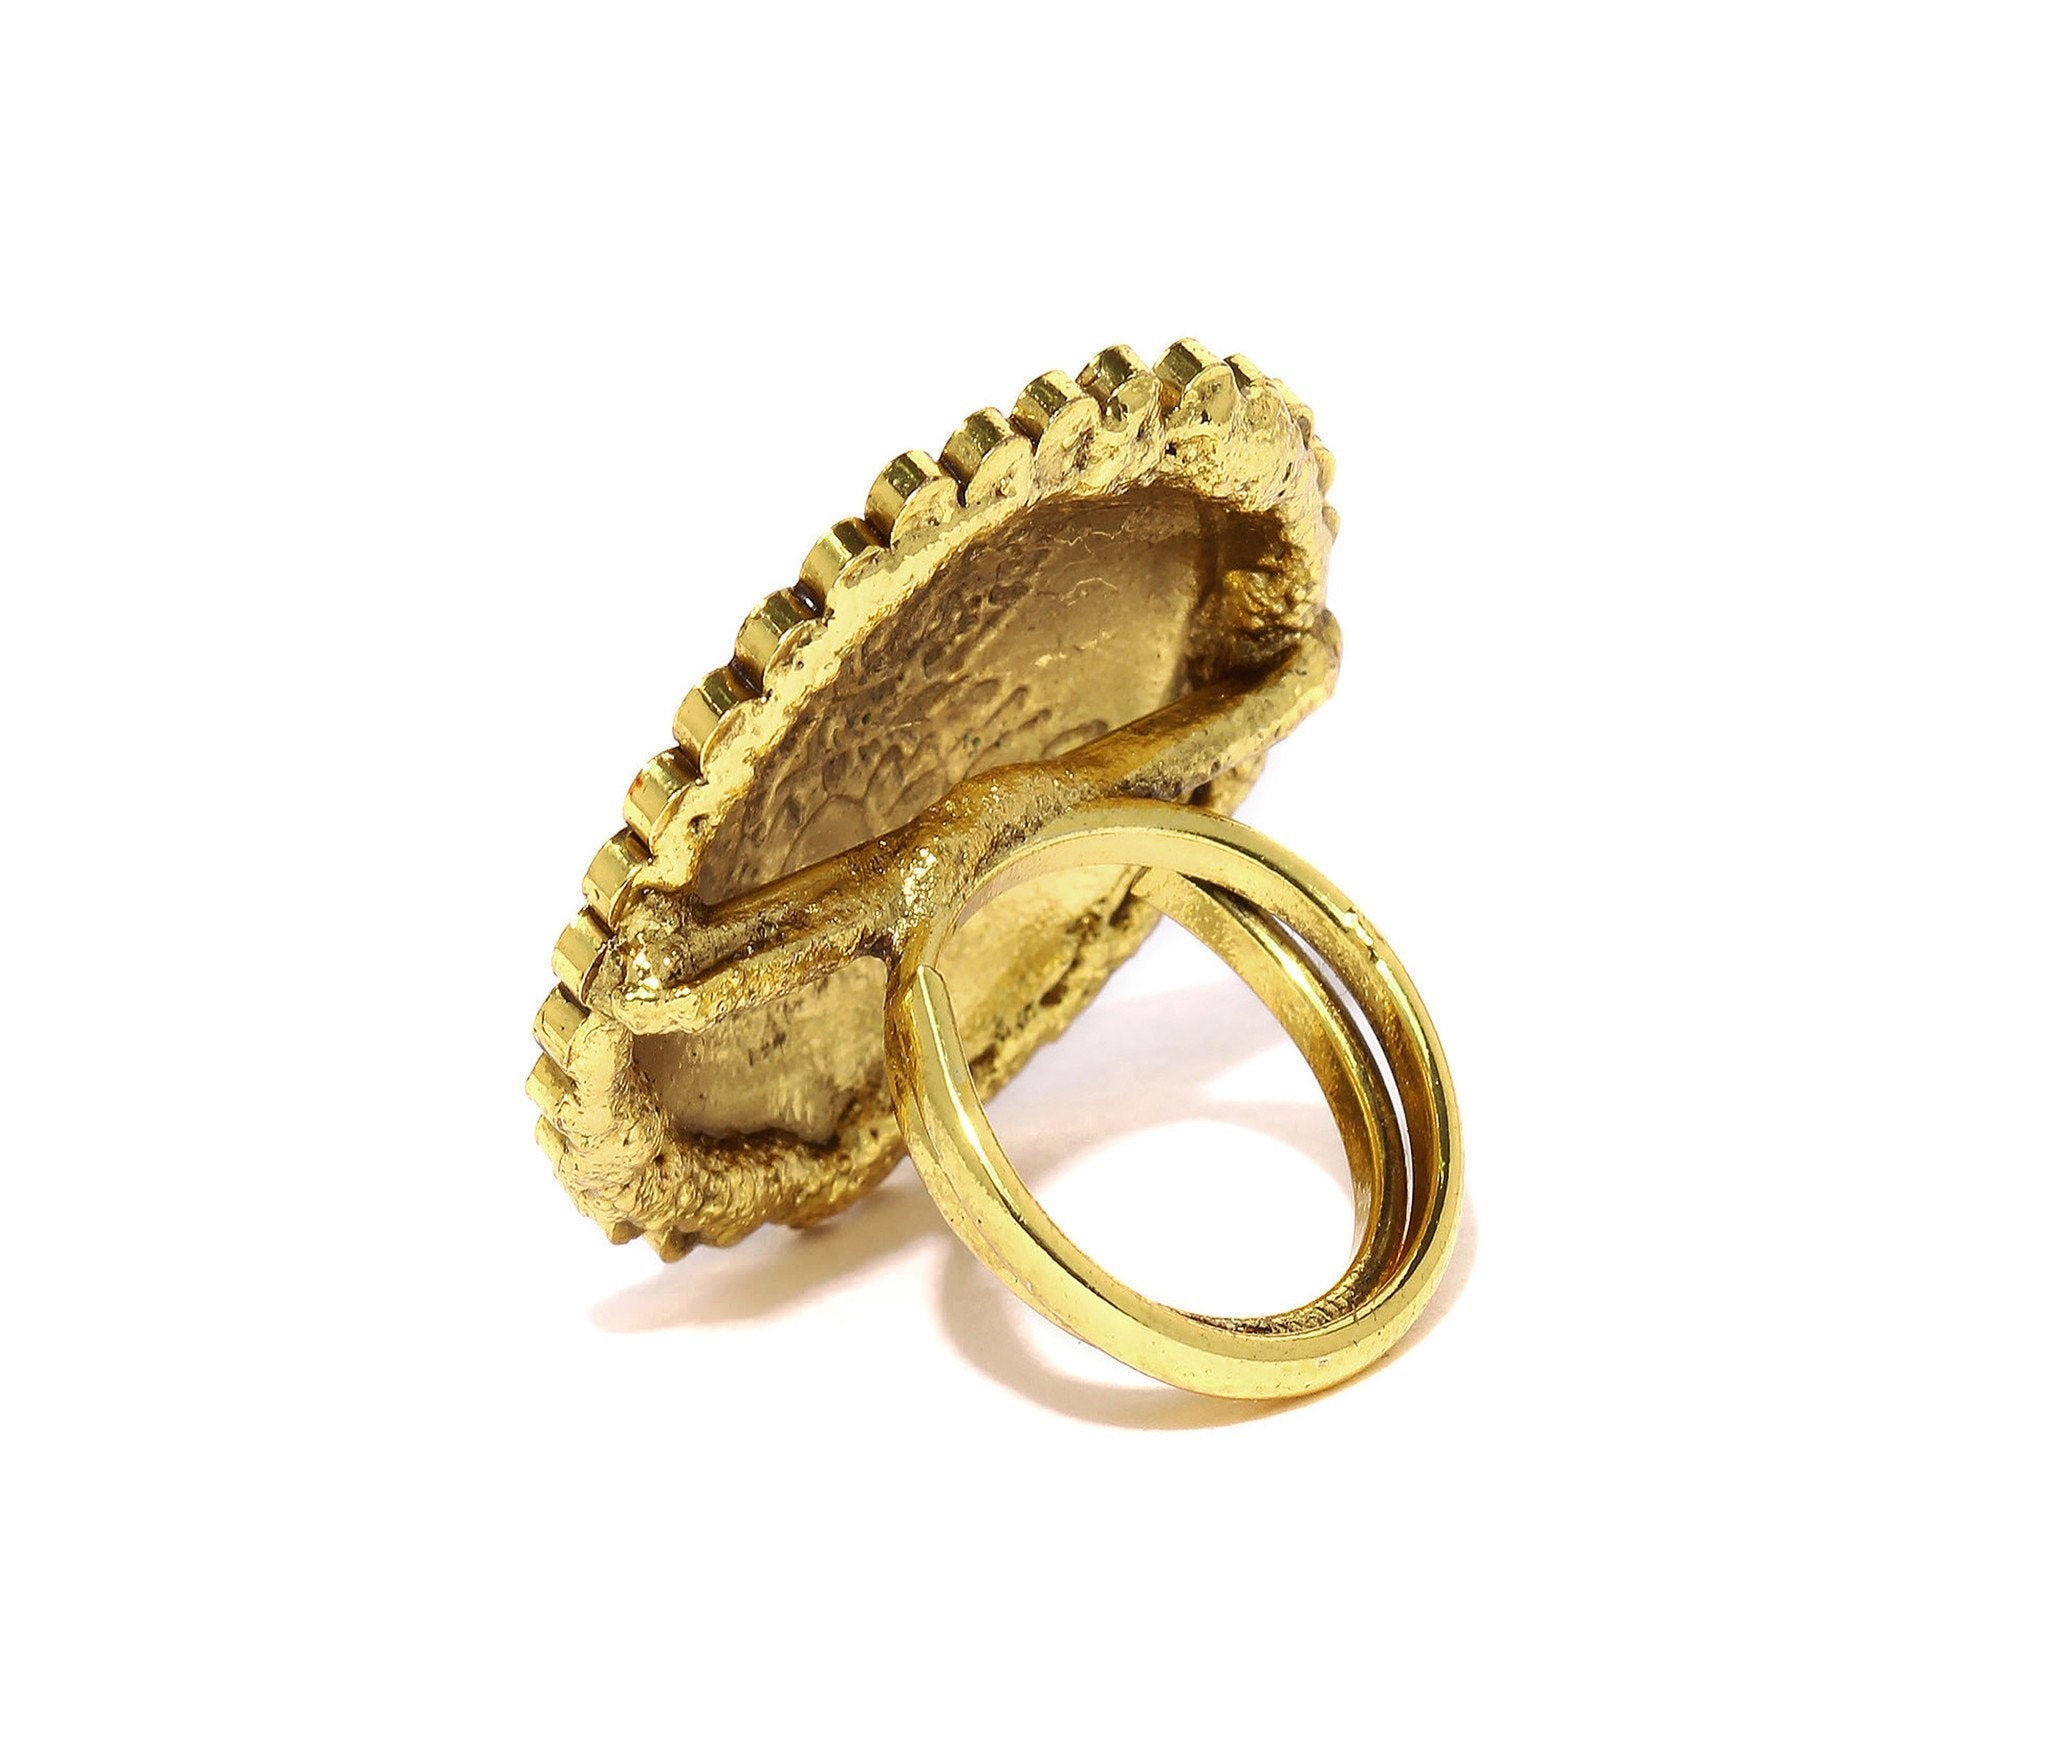 Fida Gold Ashtalakshmi Statement Ring